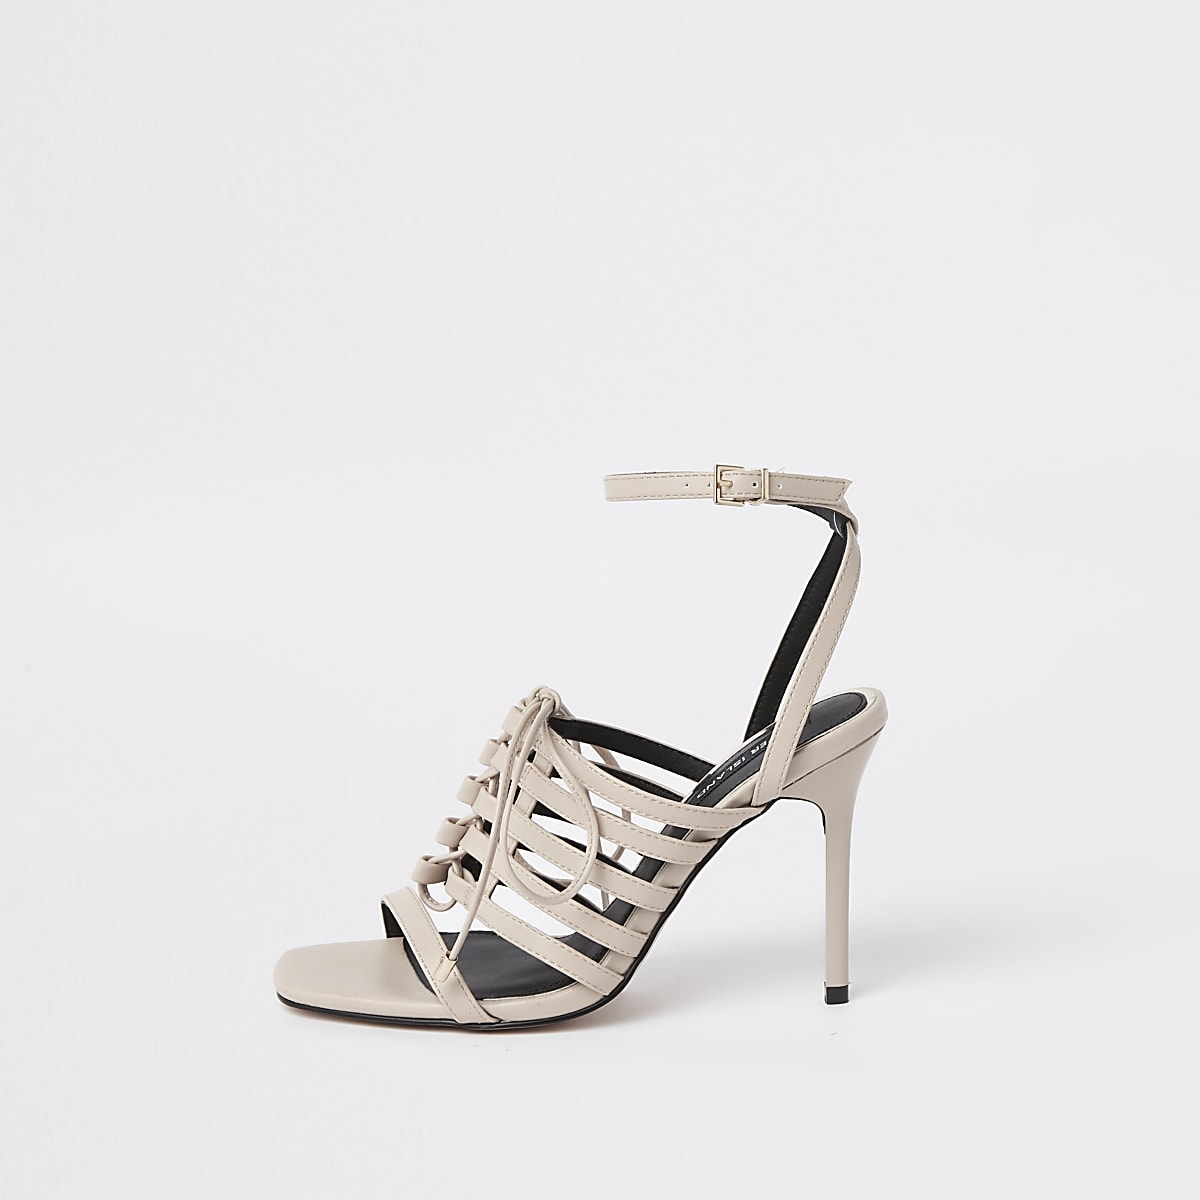 677d7dc1891 Light pink strappy lace up heel sandals - Sandals - Shoes   Boots - women